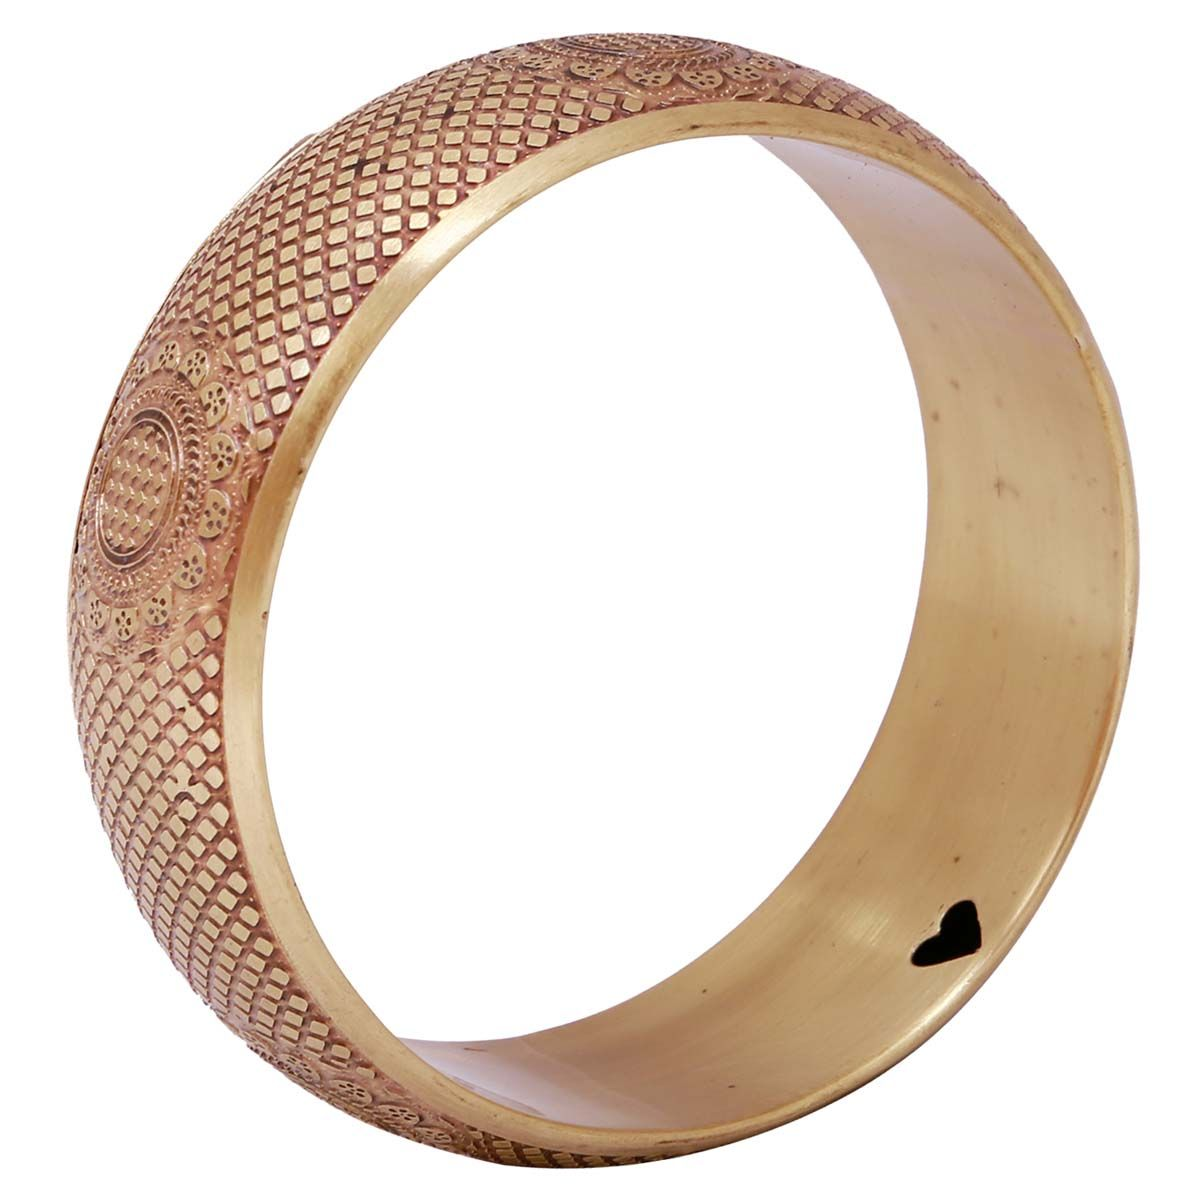 Bulk Wholesale Handmade Antique-Look Metal Bangle with Golden Finish – Designed with Intricate Patterns on the Outer Side & Black Hearts on the Inner Side – Fashion Accessories / Stylish Jewelry from India